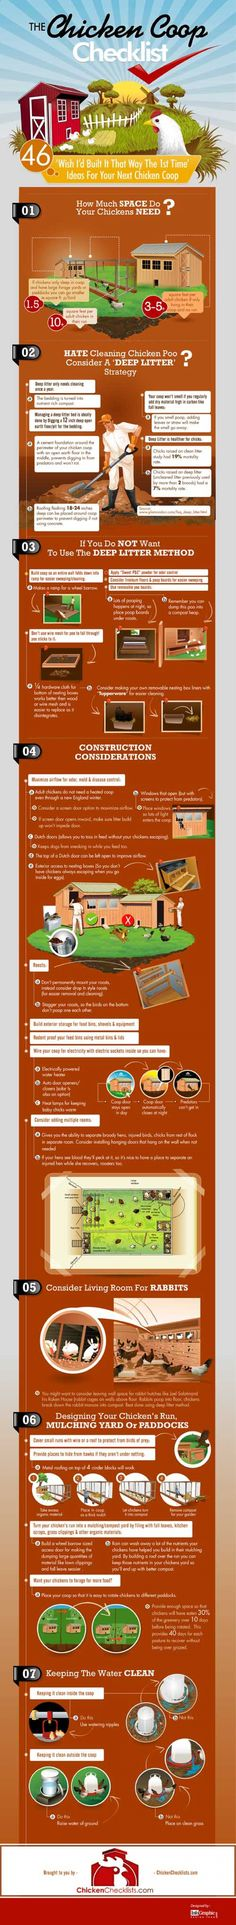 46 Ideas to Help Build The Best Chicken Coop | Visual.ly